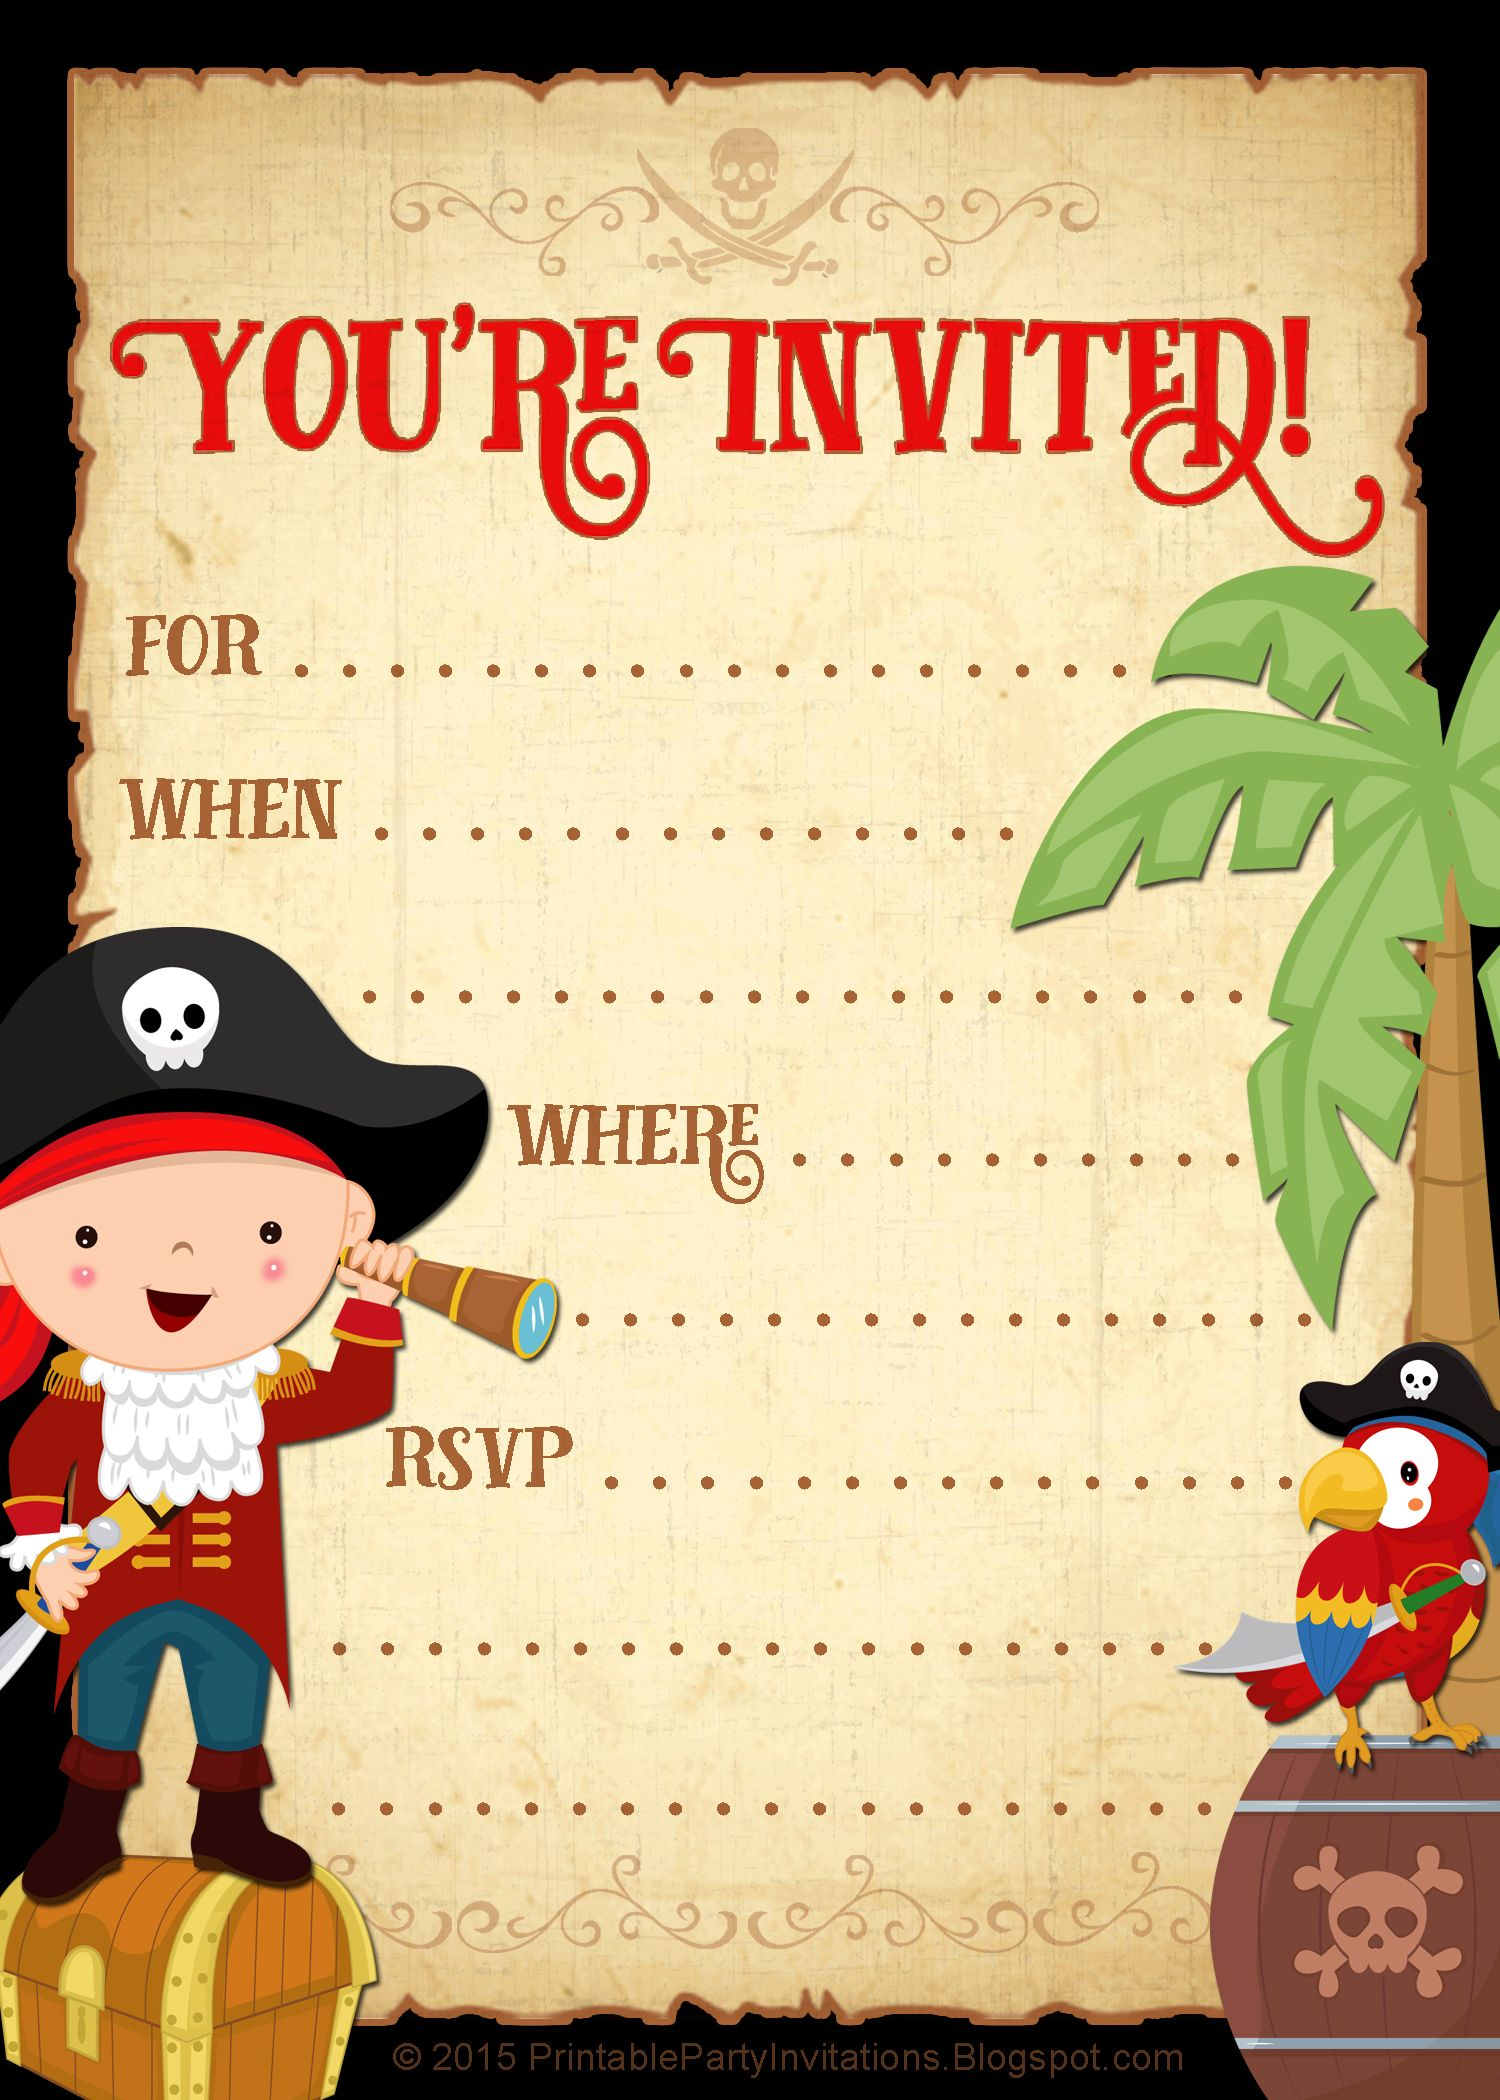 Free Printable Pirate Party Invitation Pirate Party Invitations Pirate Party Invitations Printable Pirate Invitations